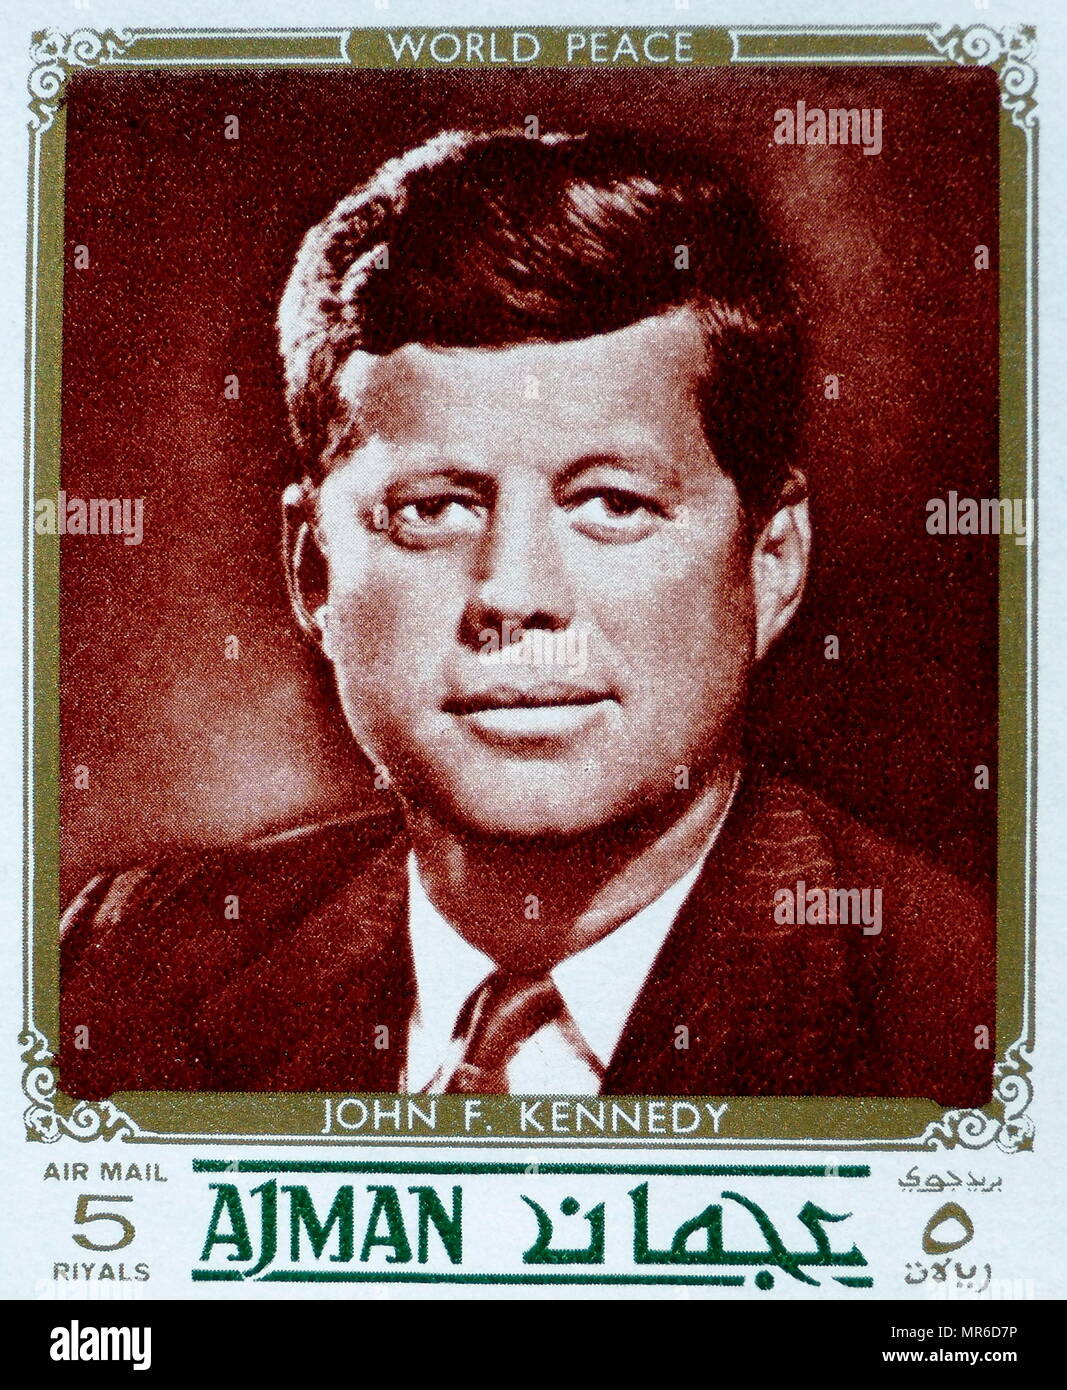 Stamp depicting the American President John F Kennedy, issued by the state of Ajman in the United Arab Emirates - Stock Image